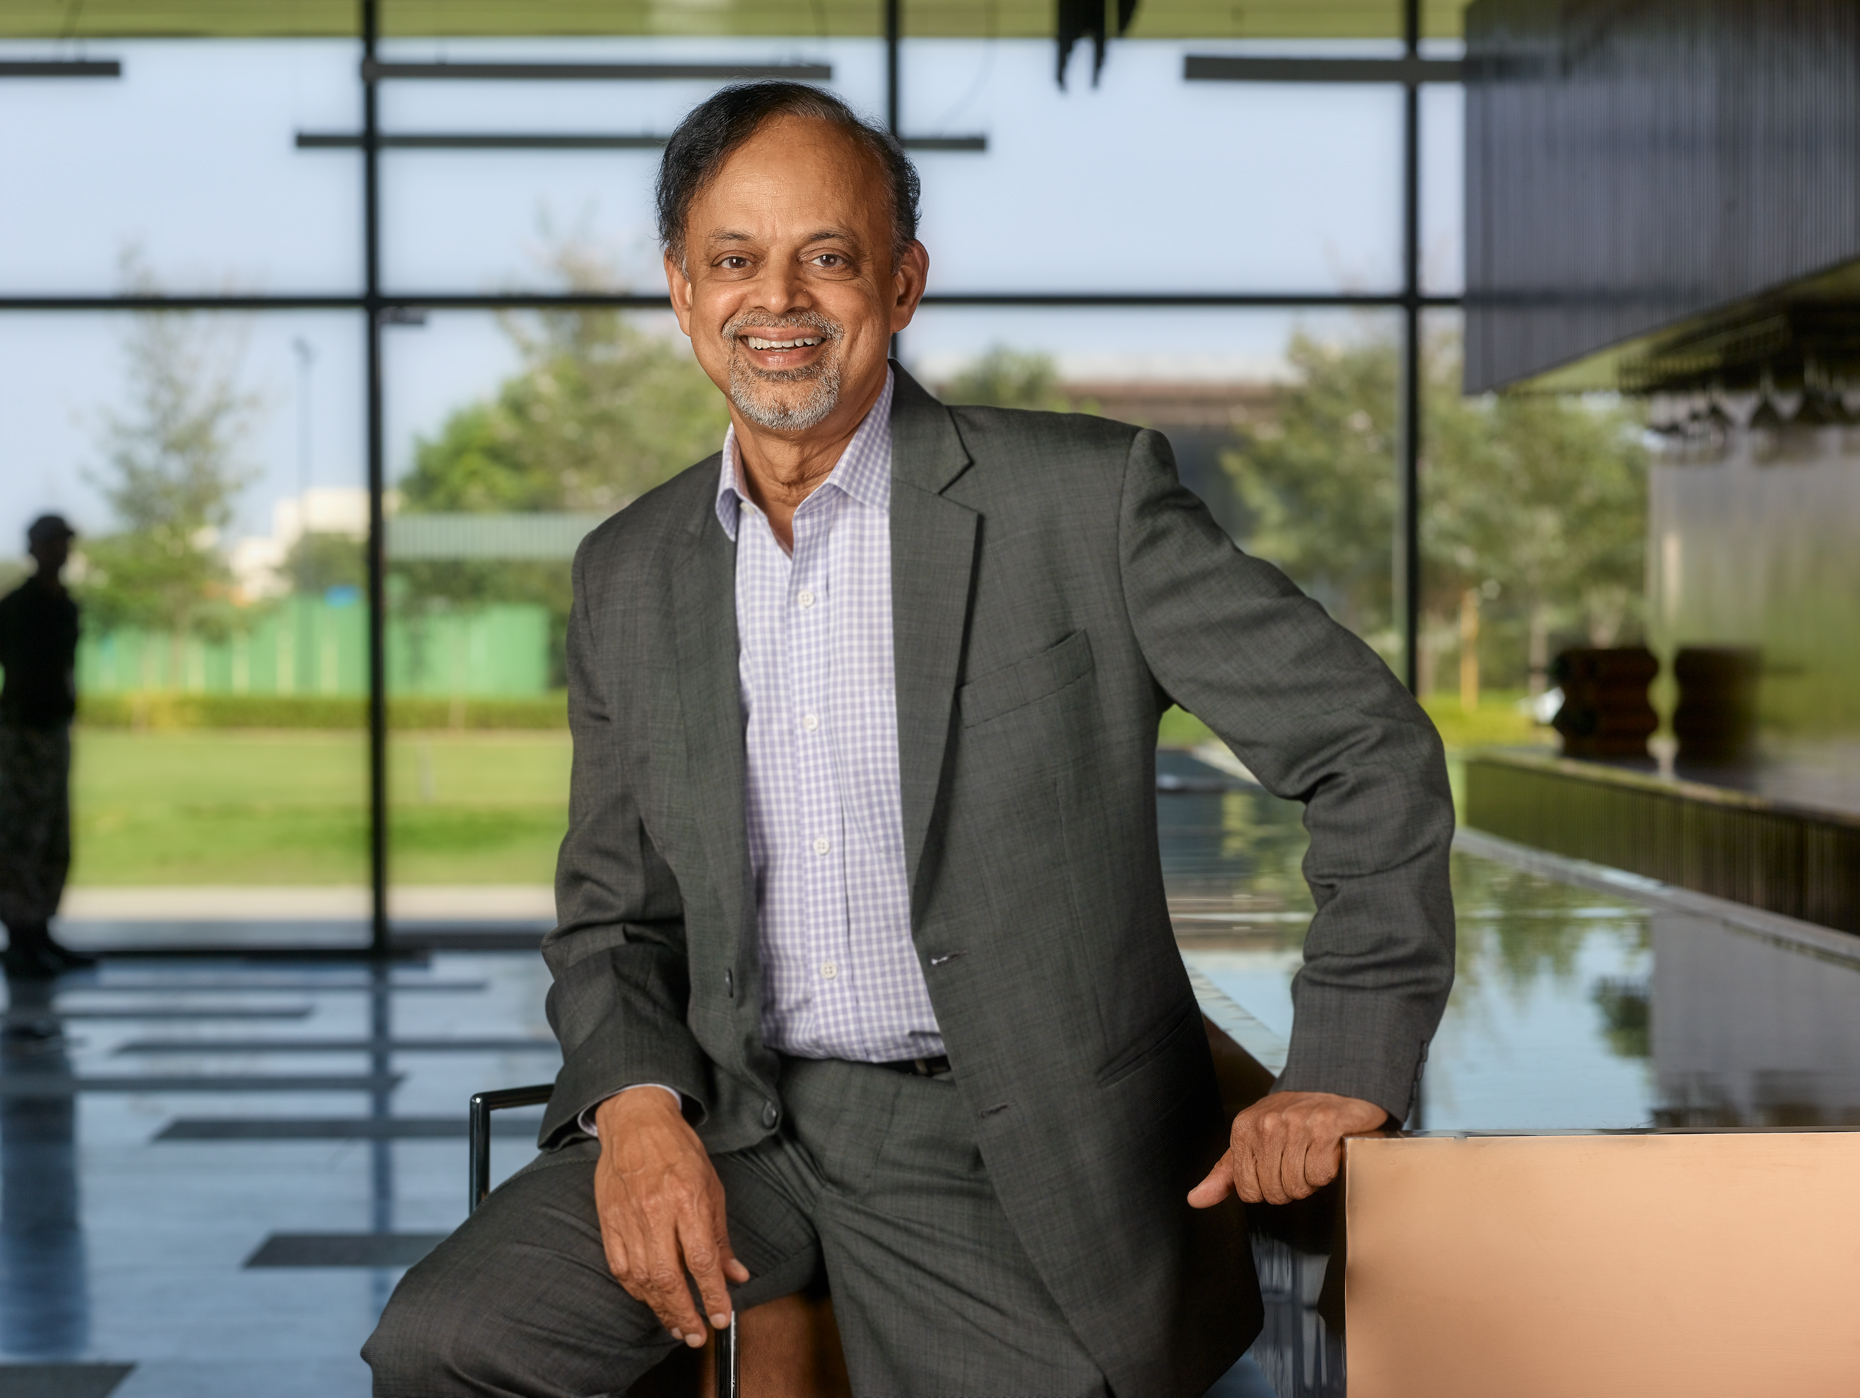 Creative headshot of CEO Raghavan